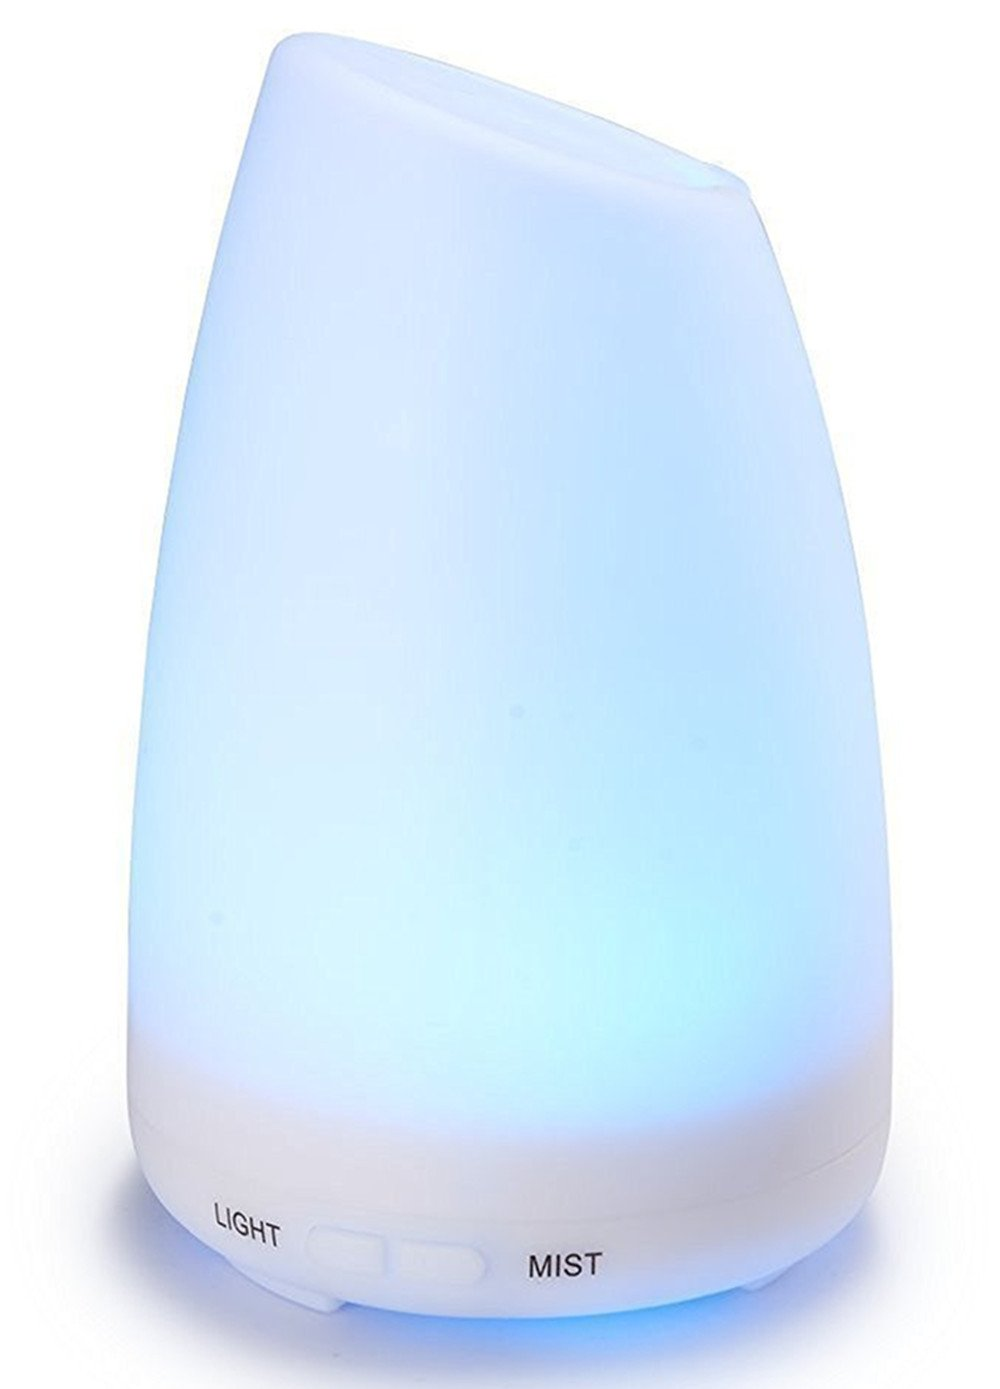 Aroma Diffuser,Running Fish 100ml Ultrasonic Cool Mist Air Humidifier Aromatherapy Essential Diffuser with 7 Colorful Lights Waterless Auto Shut Off for Baby Living Room Bedroom Yoga Office Spa -100ml